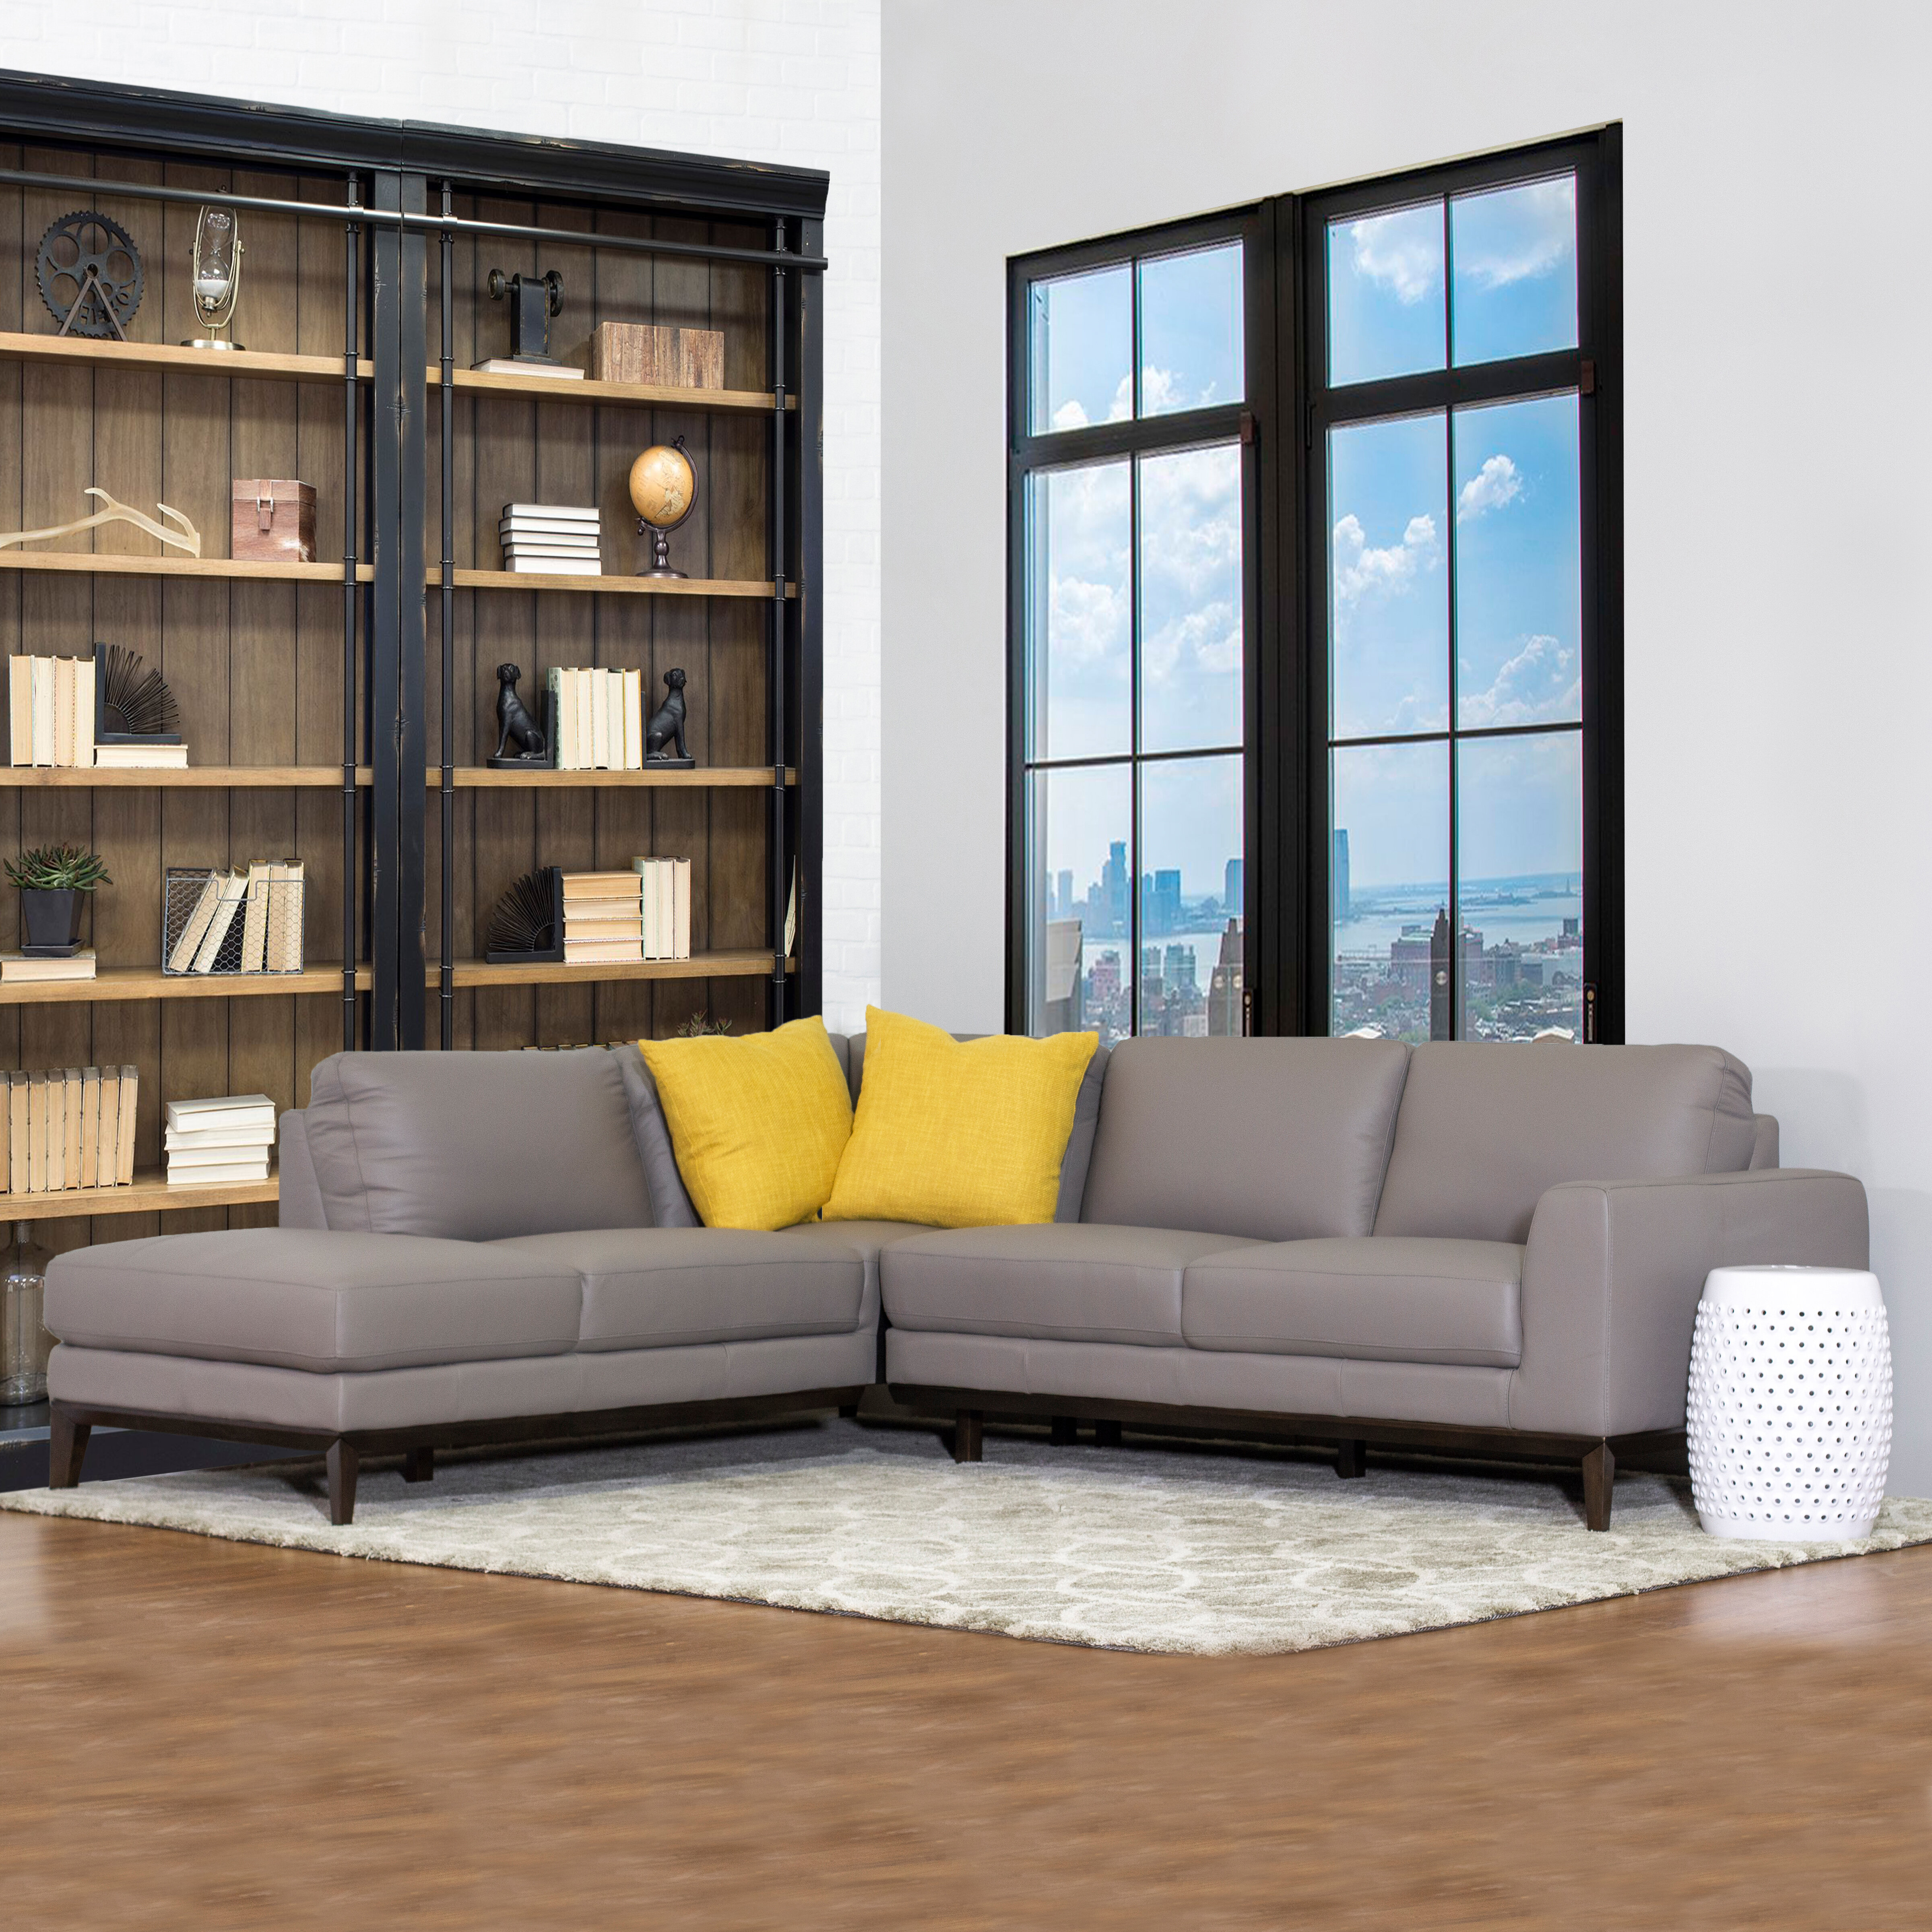 Awe Inspiring Lorimer Leather Sectional Sofa Short Links Chair Design For Home Short Linksinfo